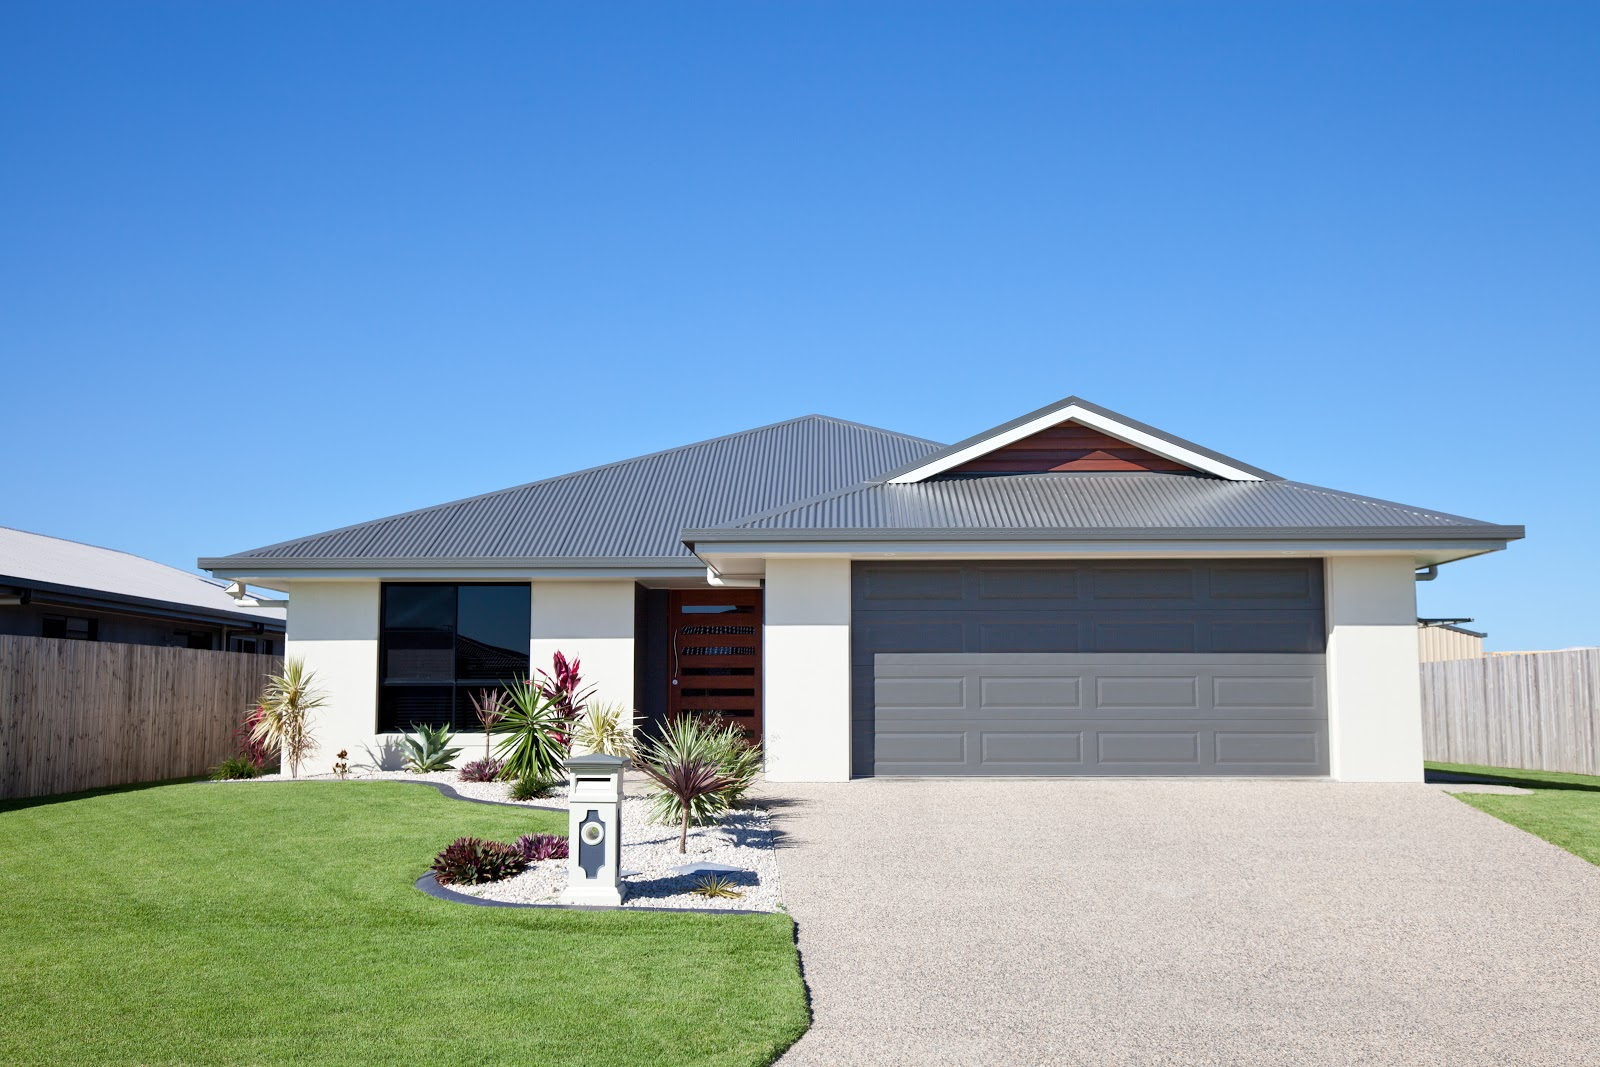 front of home with driveway and landscaped lawn